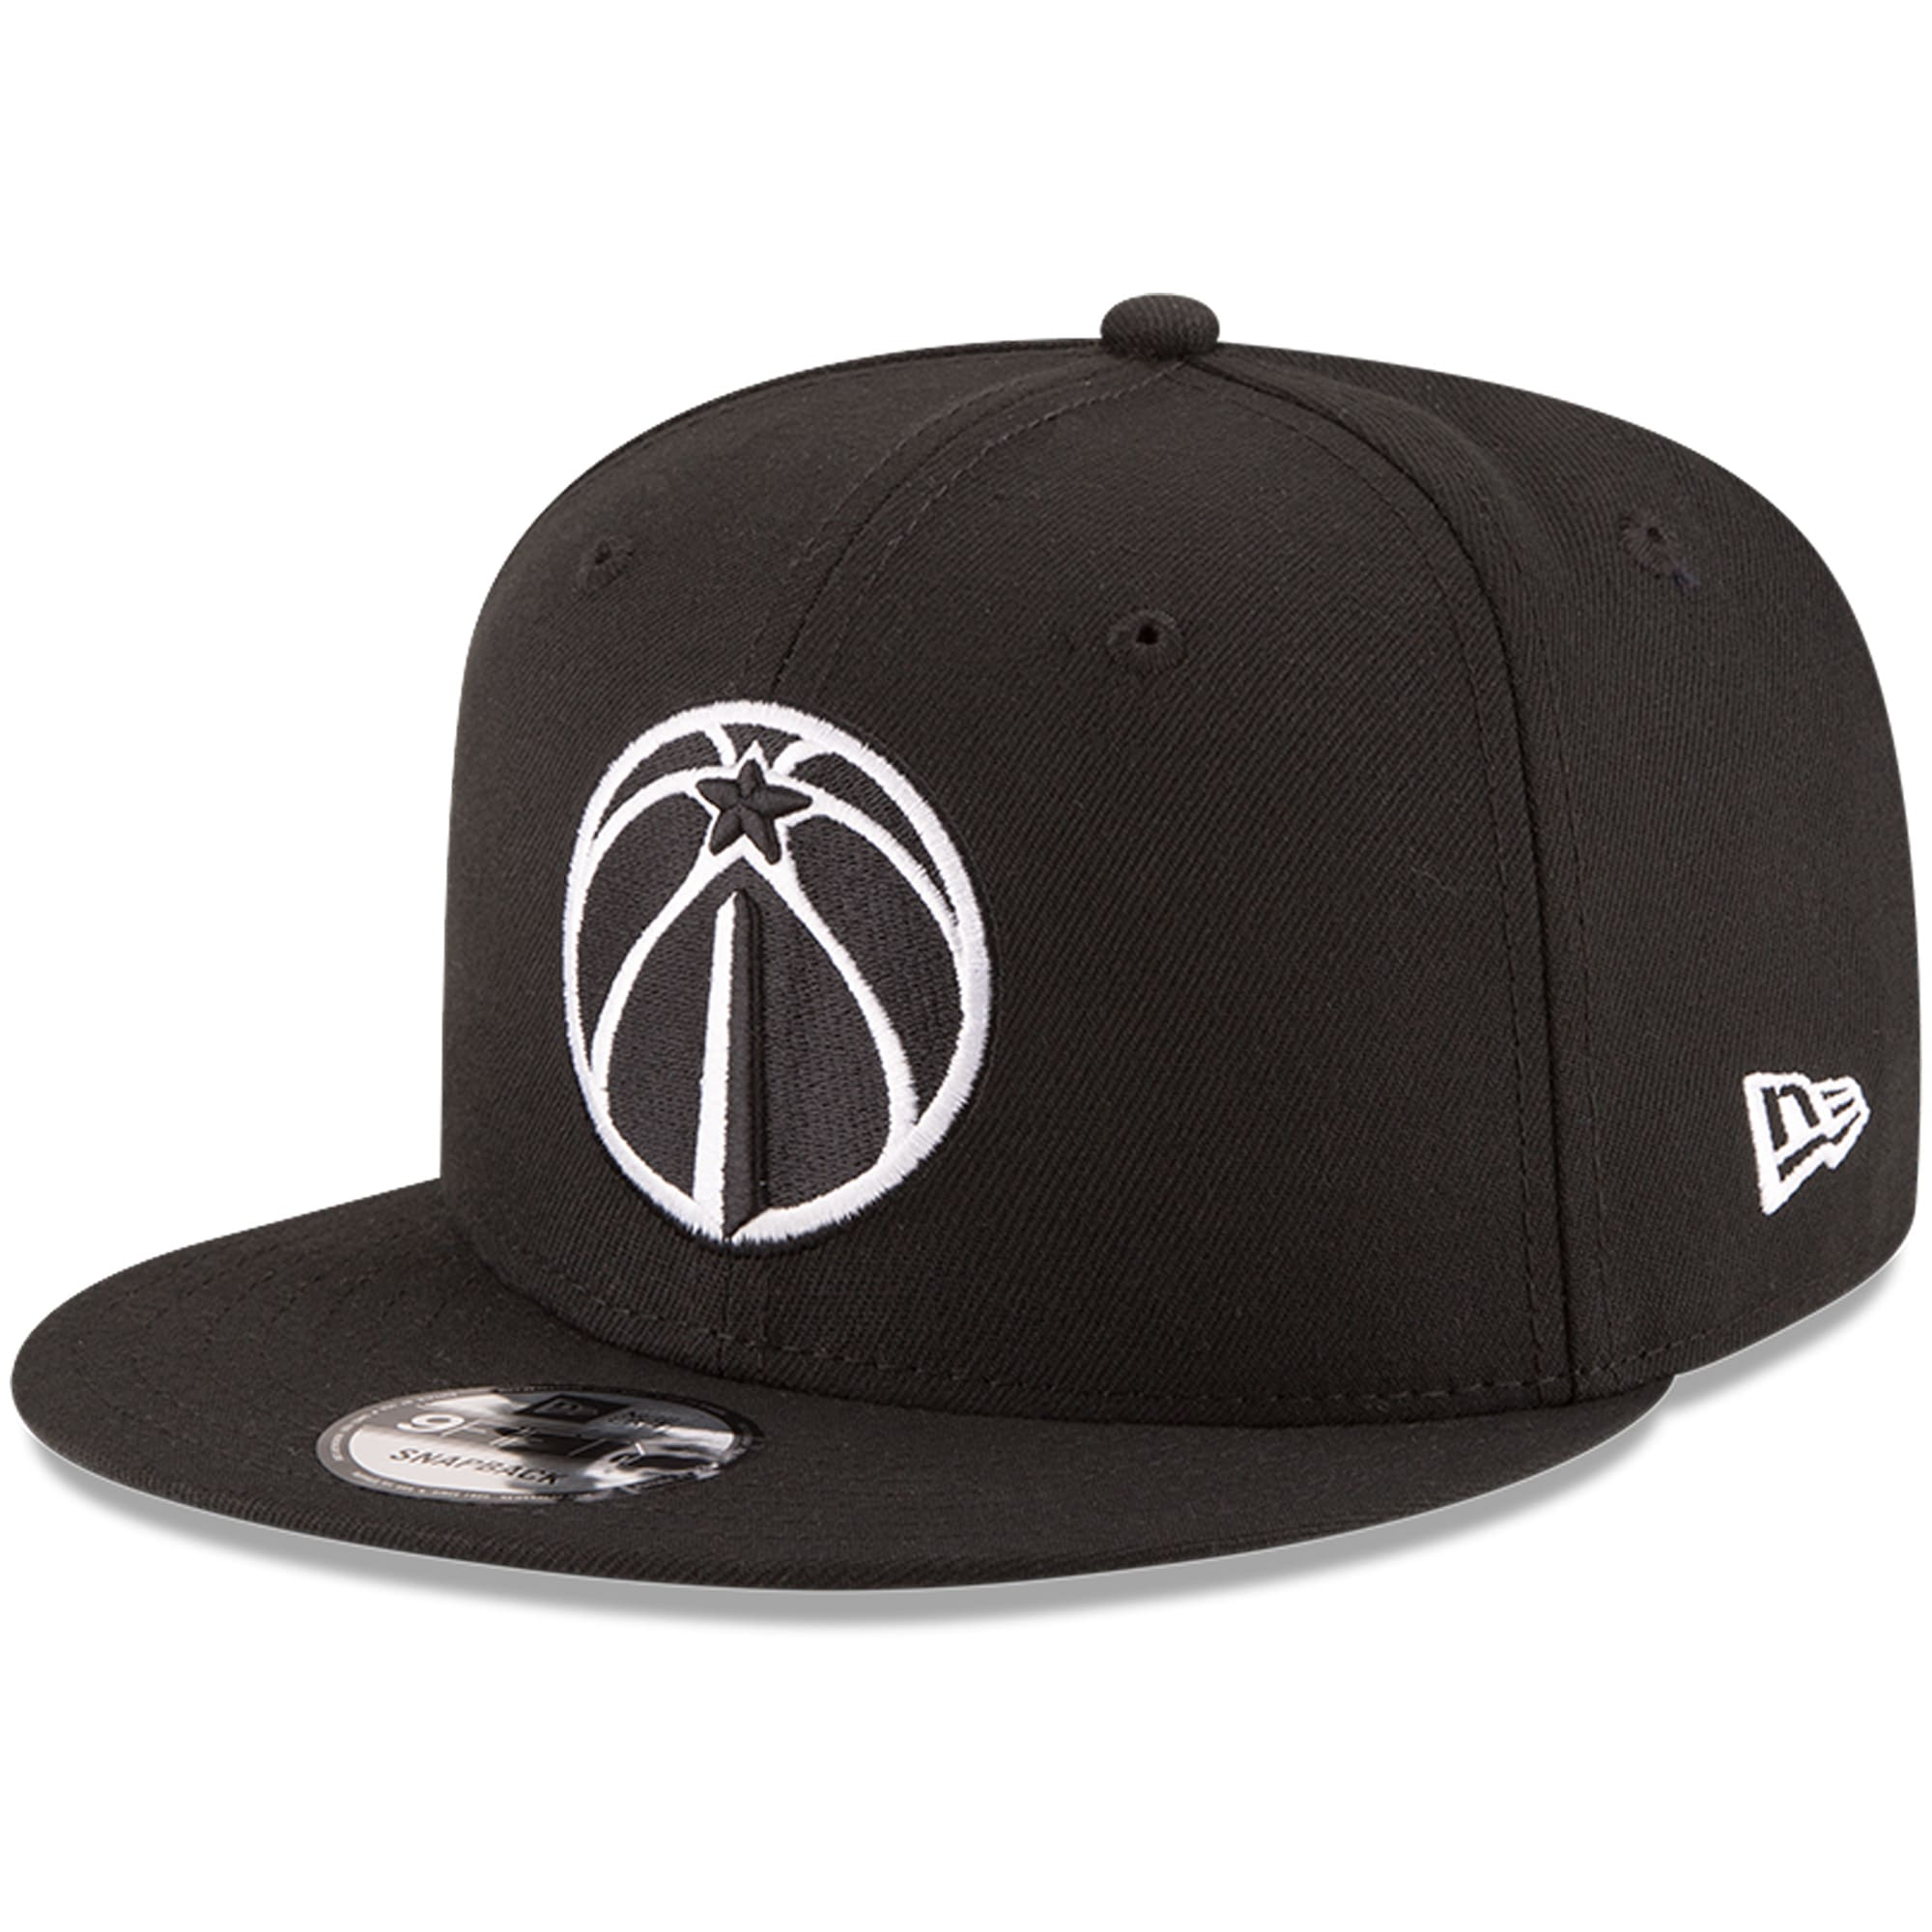 Washington Wizards New Era Black & White Logo 9FIFTY Adjustable Snapback Hat - Black